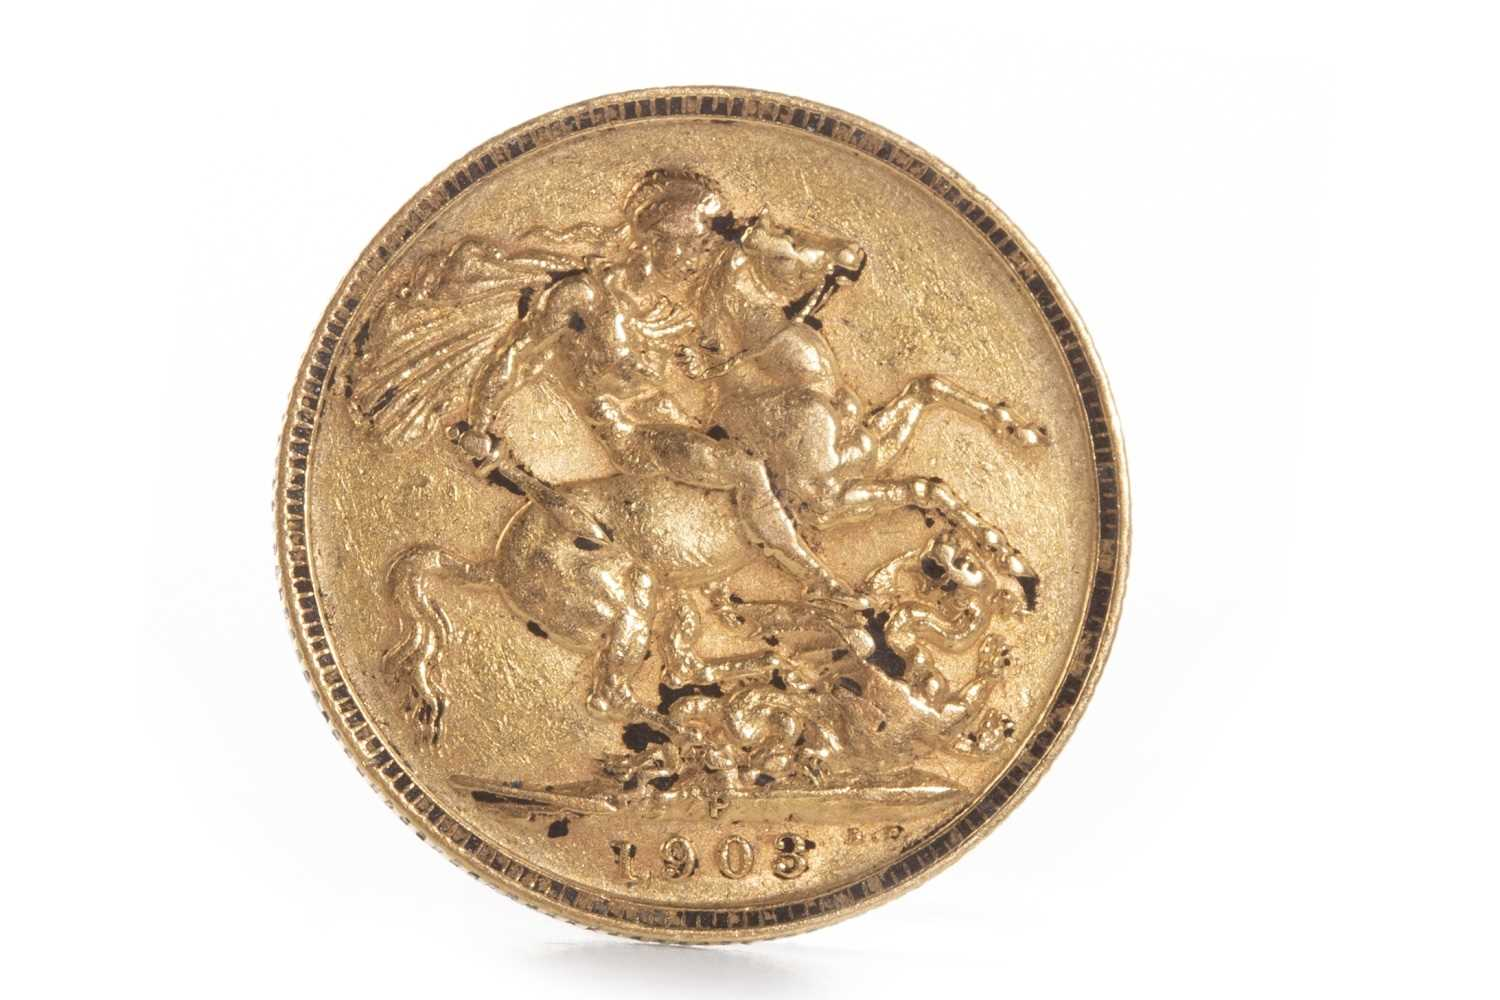 Lot 551 - A GOLD SOVEREIGN, 1903